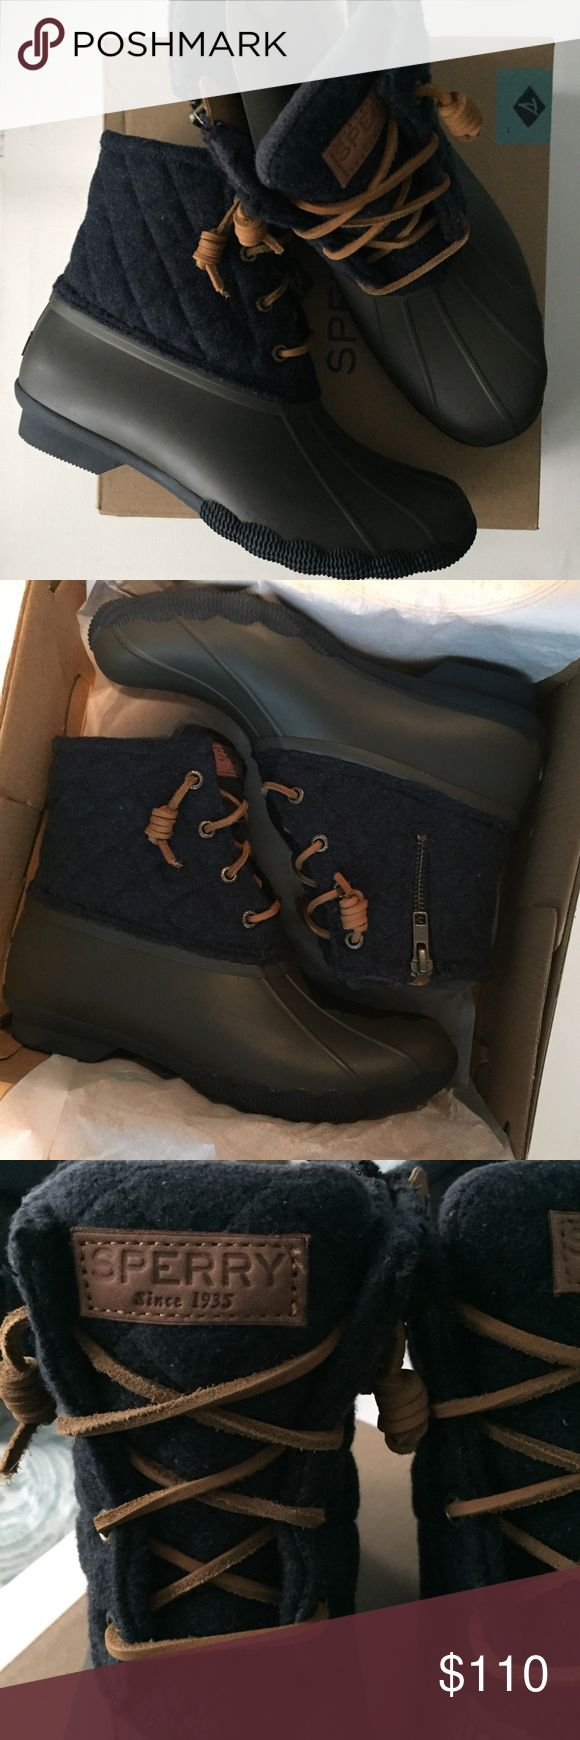 Sperry Duck Boots • 7 New in box! - size: 7 - Sperry Women's Saltwater Quited Wool Duck Boots - Tobacco/navy See something else you like? Bundle & Save! 🛍 Sperry Shoes Winter & Rain Boots